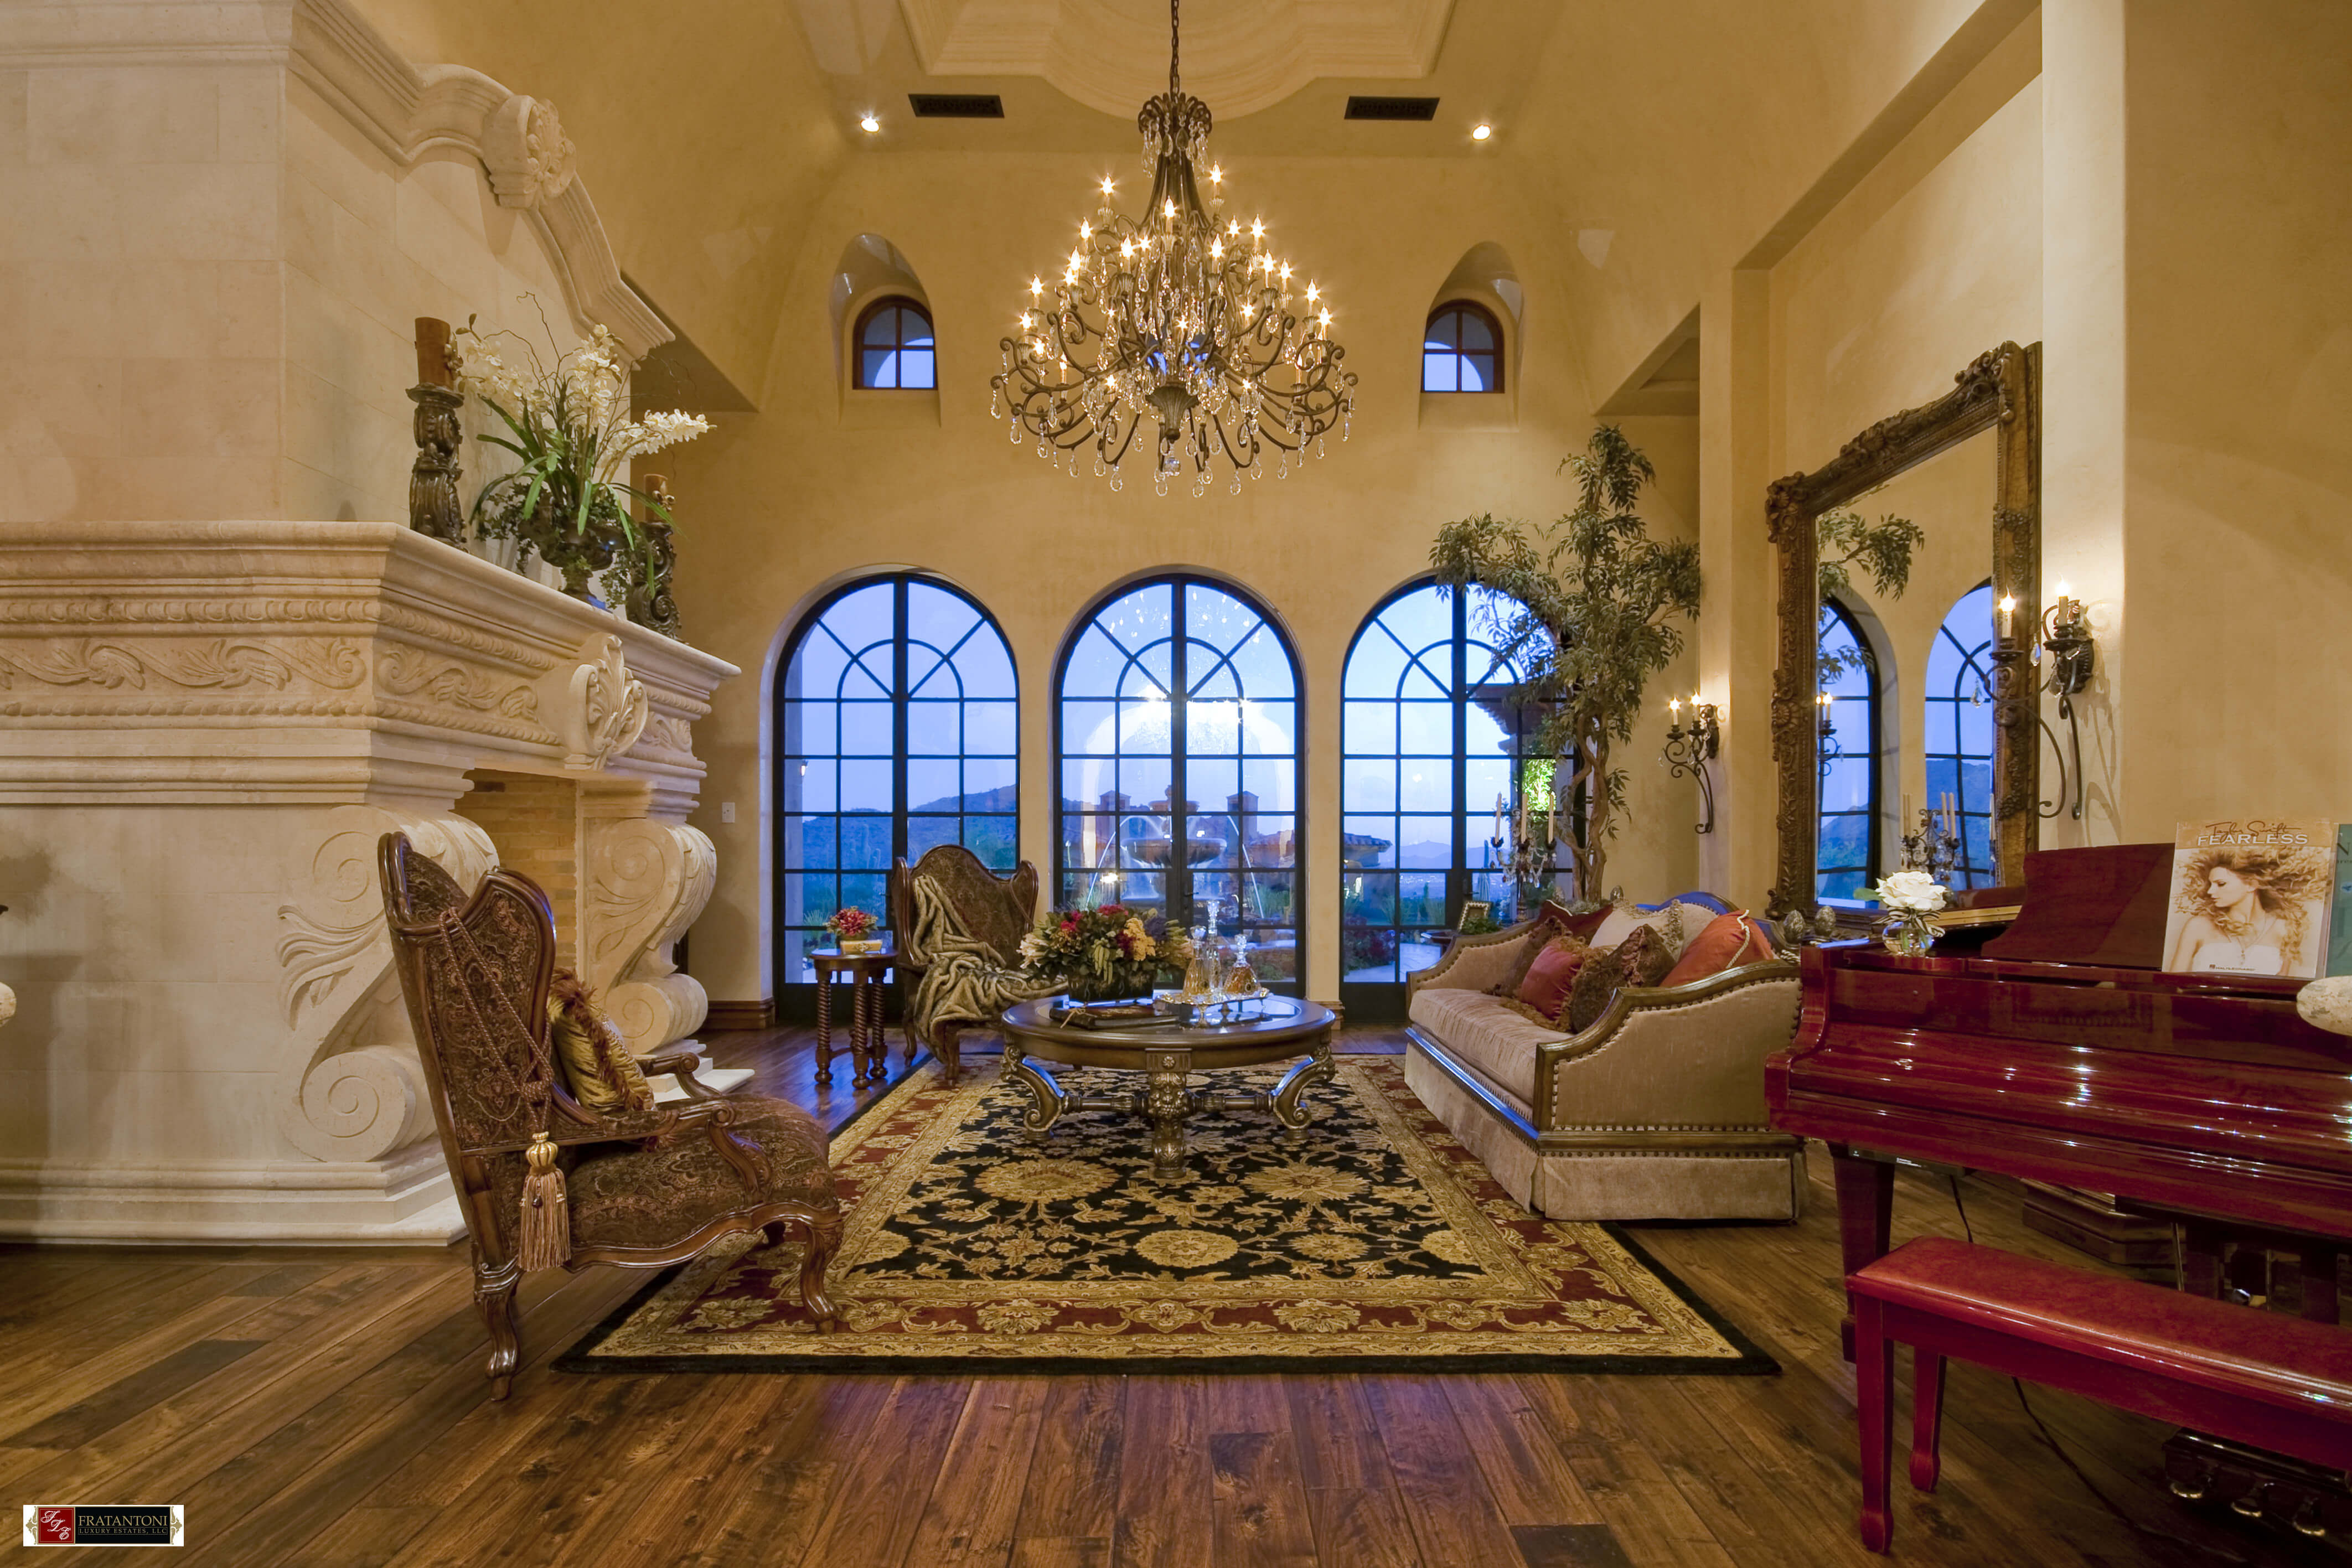 8-Living-Room-with-Classic-European-Fireplace-Surround